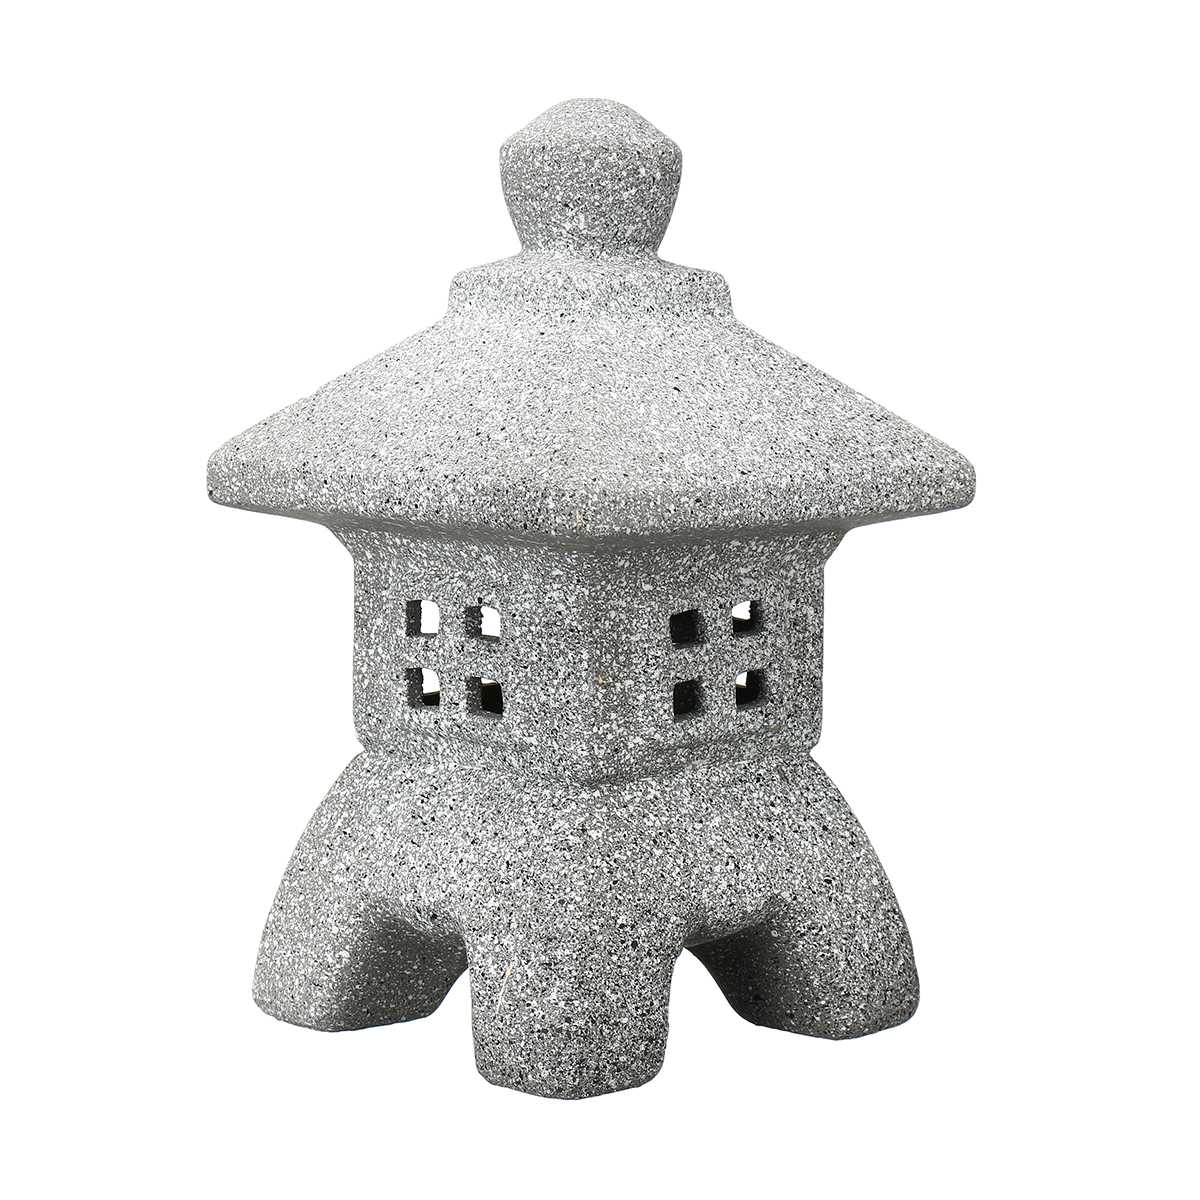 Garden Ornament Pagoda Garden Yard Sculpture Lantern Crafts Candle Holder Patio